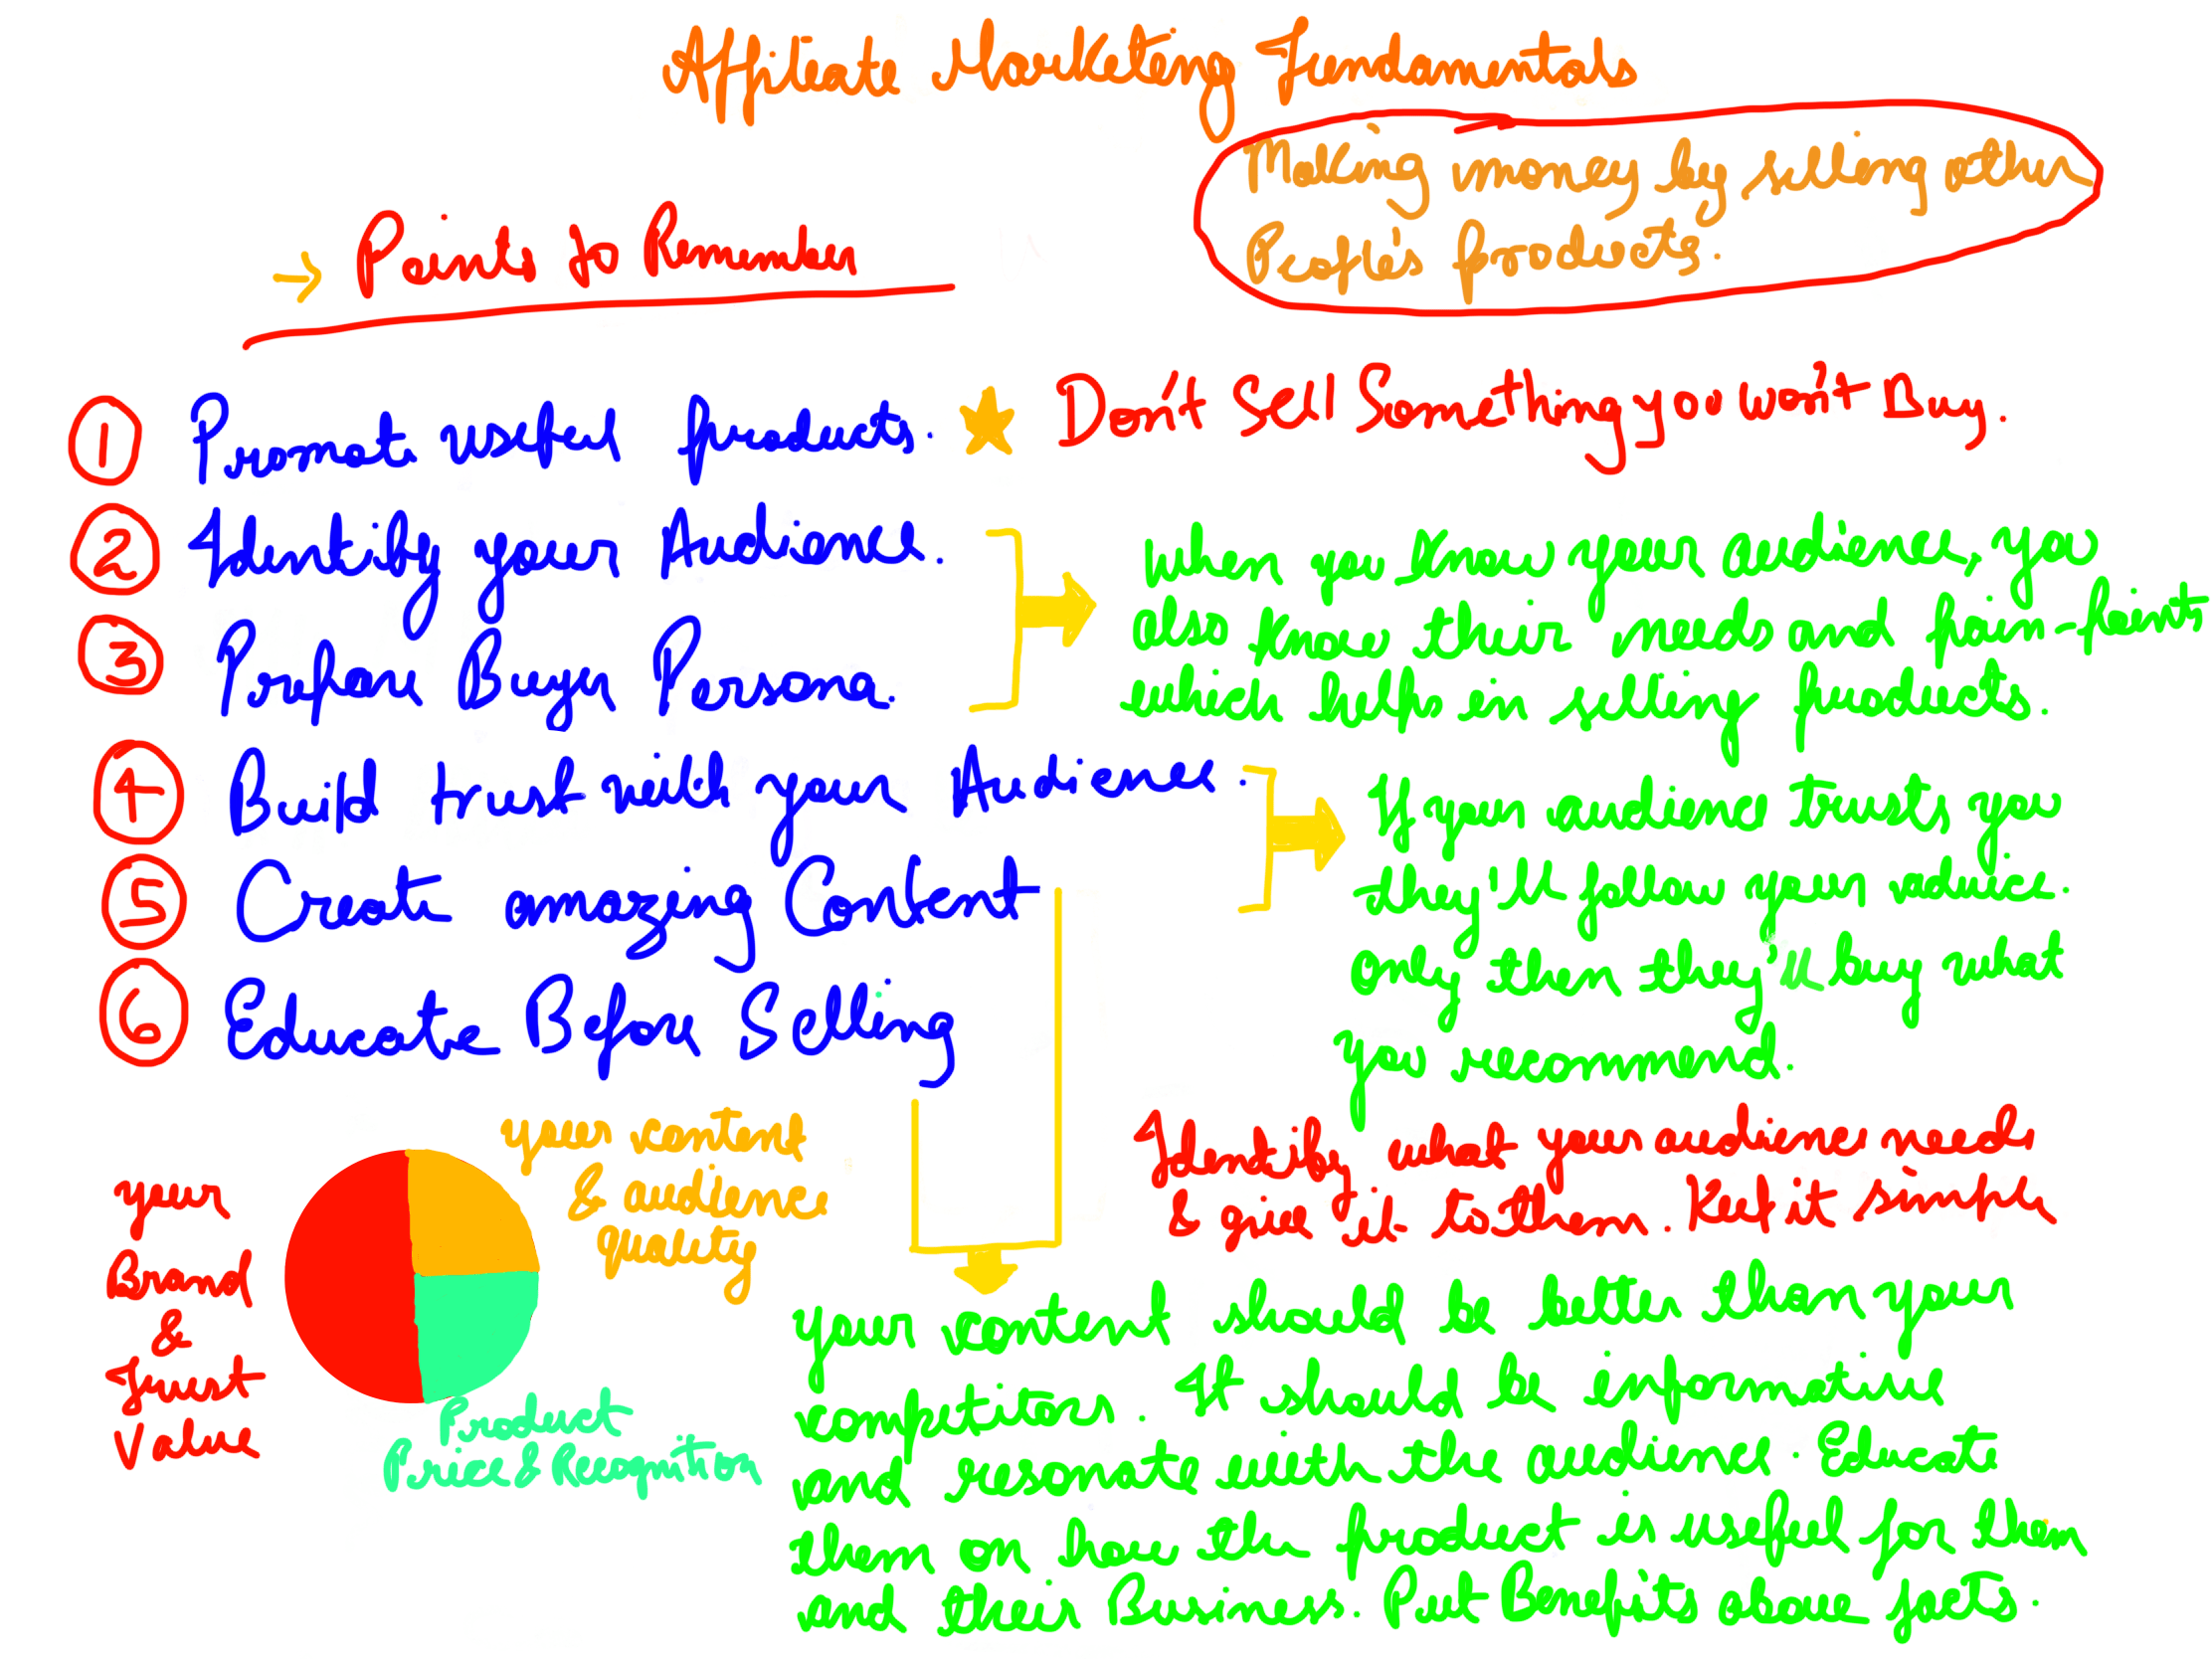 Affiliate-marketing-fundamentals-whiteboard